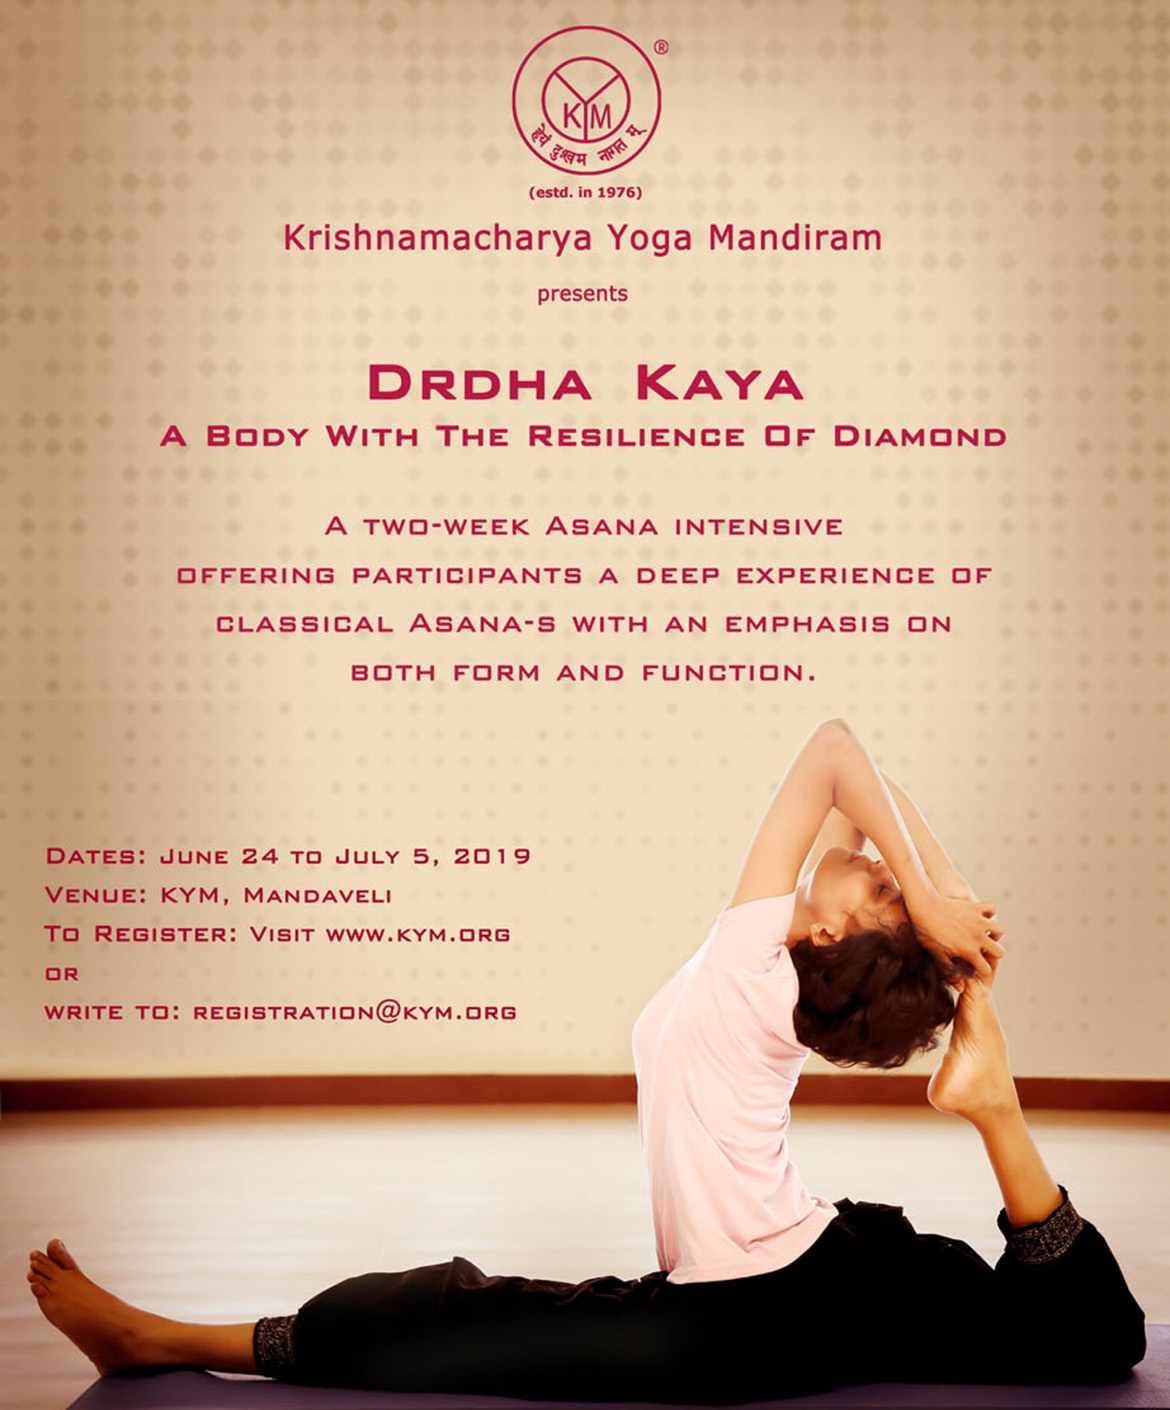 Drdha Kaya | A Body With The Resilience Of Diamond